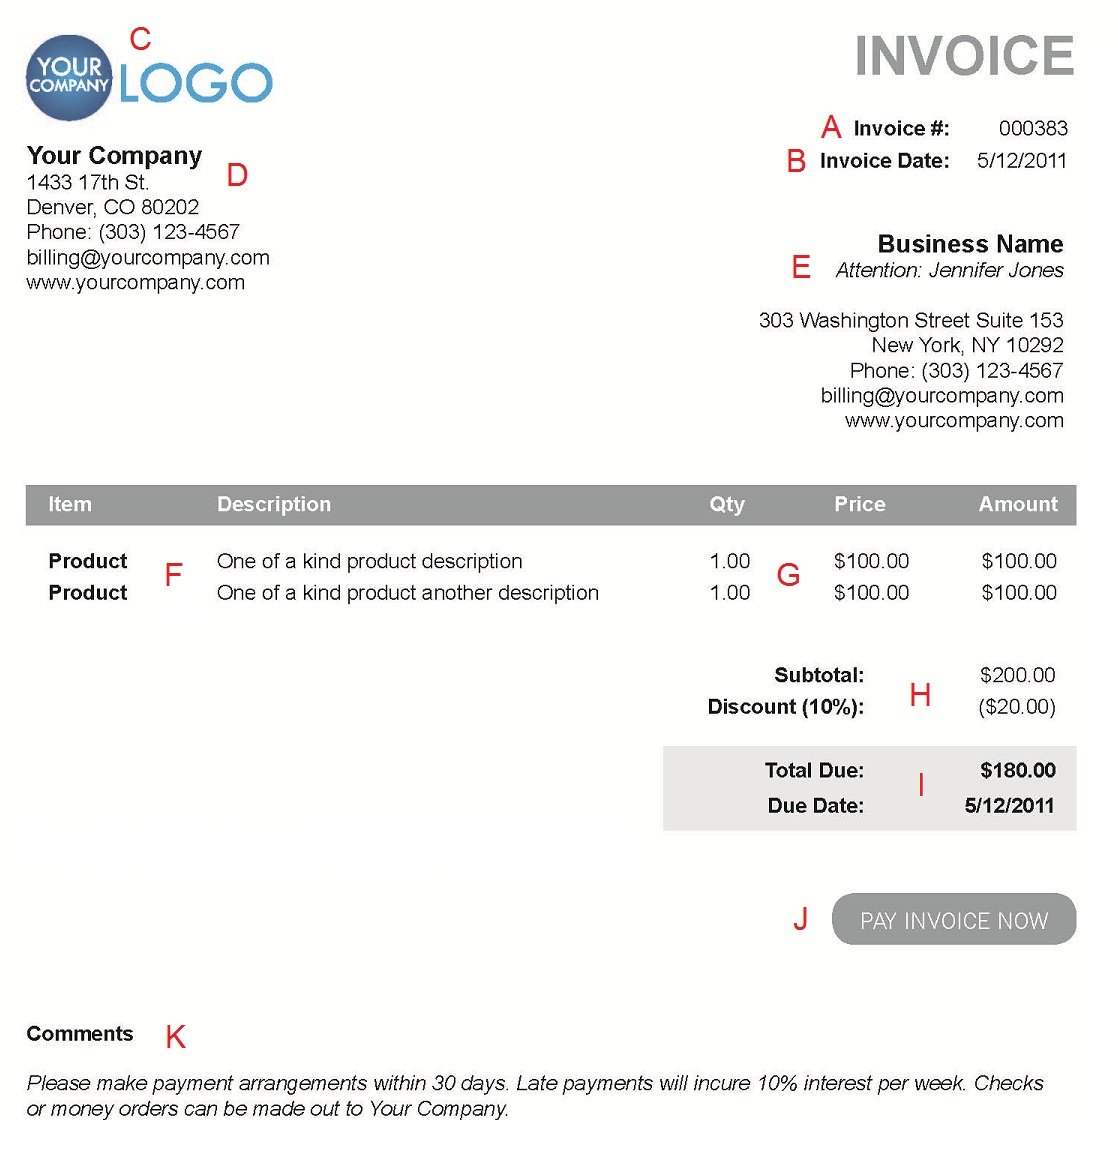 Ultrablogus  Prepossessing The  Different Sections Of An Electronic Payment Invoice With Great A  With Breathtaking Detailed Invoice Template Also Free Service Invoice In Addition Free Invoice Printable And Sprint Invoice As Well As Download Excel Invoice Template Additionally Employee Invoice Template From Paysimplecom With Ultrablogus  Great The  Different Sections Of An Electronic Payment Invoice With Breathtaking A  And Prepossessing Detailed Invoice Template Also Free Service Invoice In Addition Free Invoice Printable From Paysimplecom